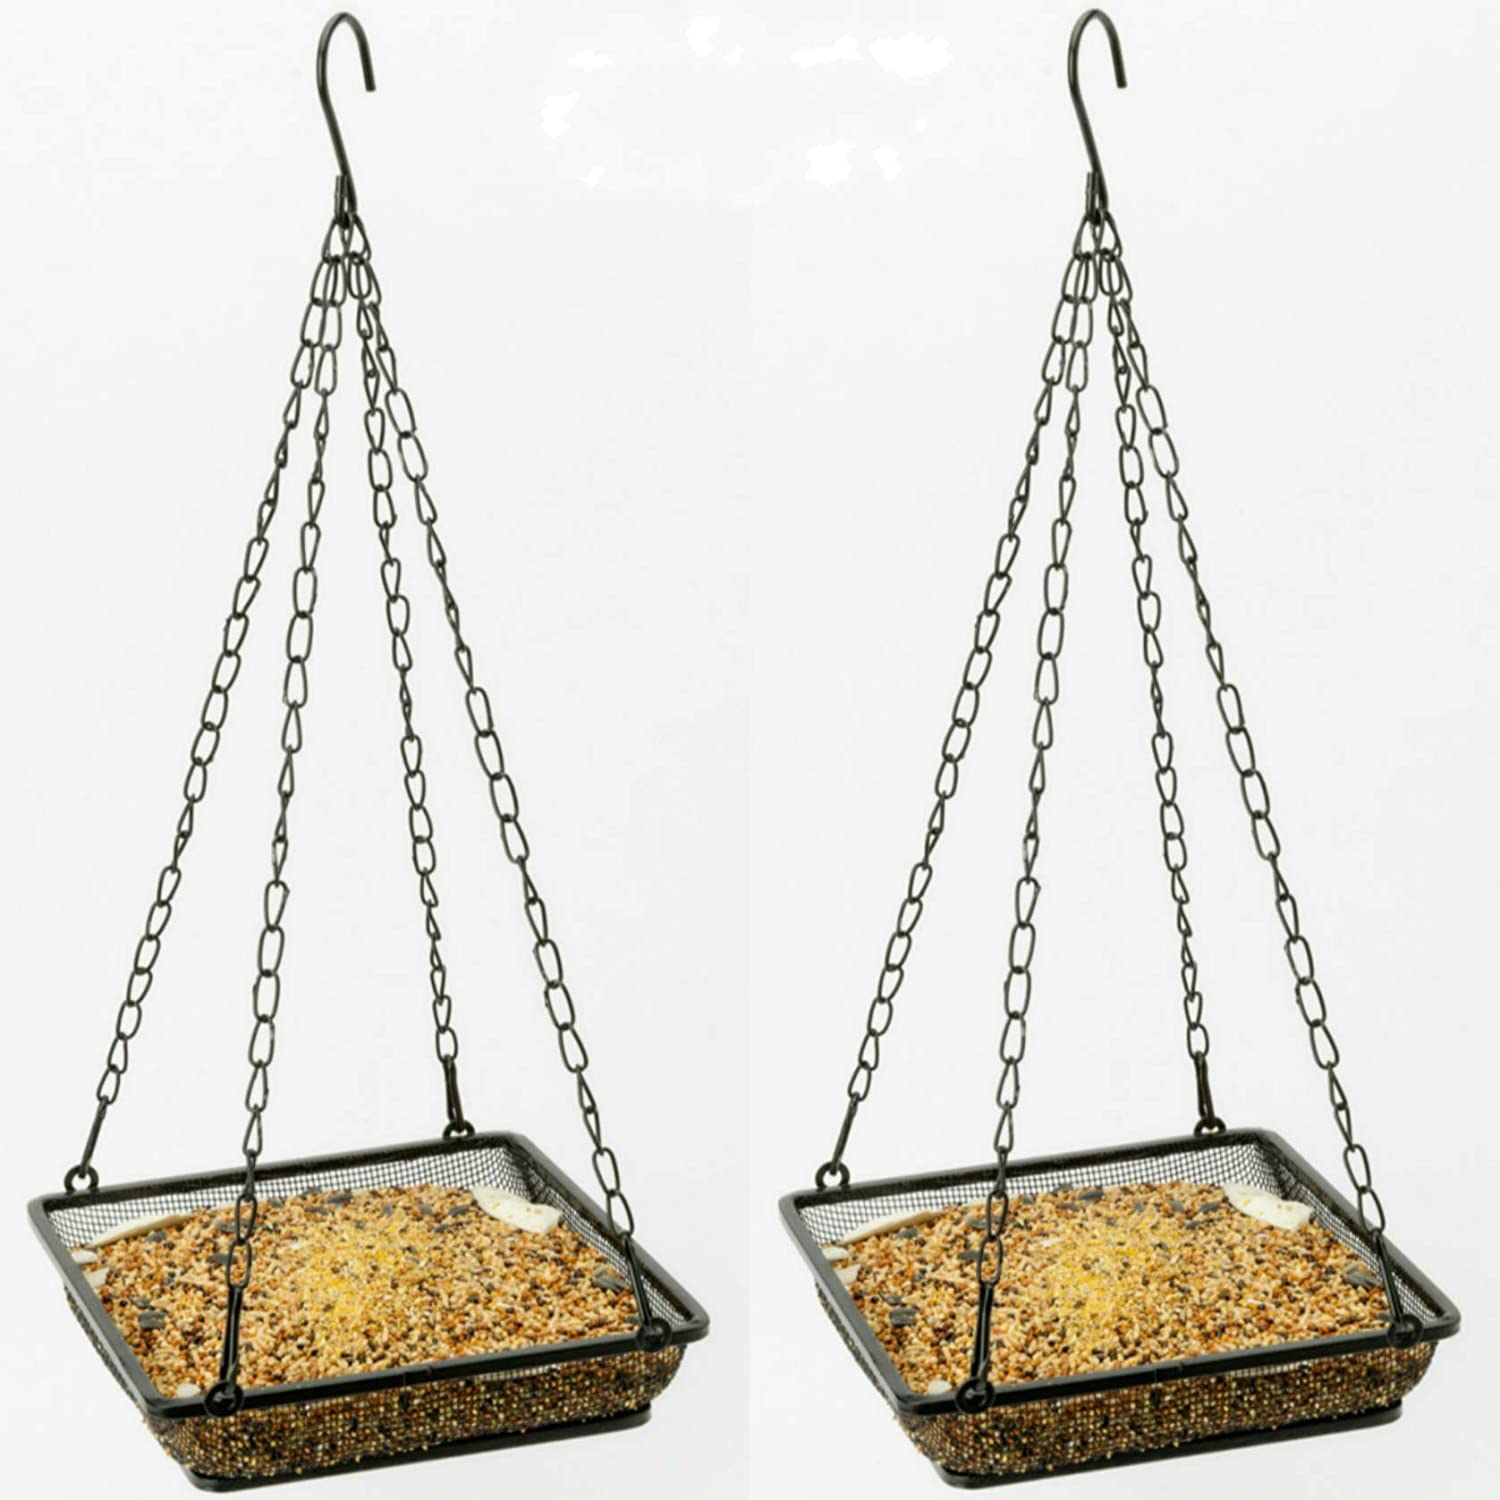 WOSIBO 2 Pack Hanging Bird Feeder Tray, Platform Metal Mesh Seed Tray for Bird Feeders, Outdoor Garden Decoration for Wild Backyard Attracting Birds